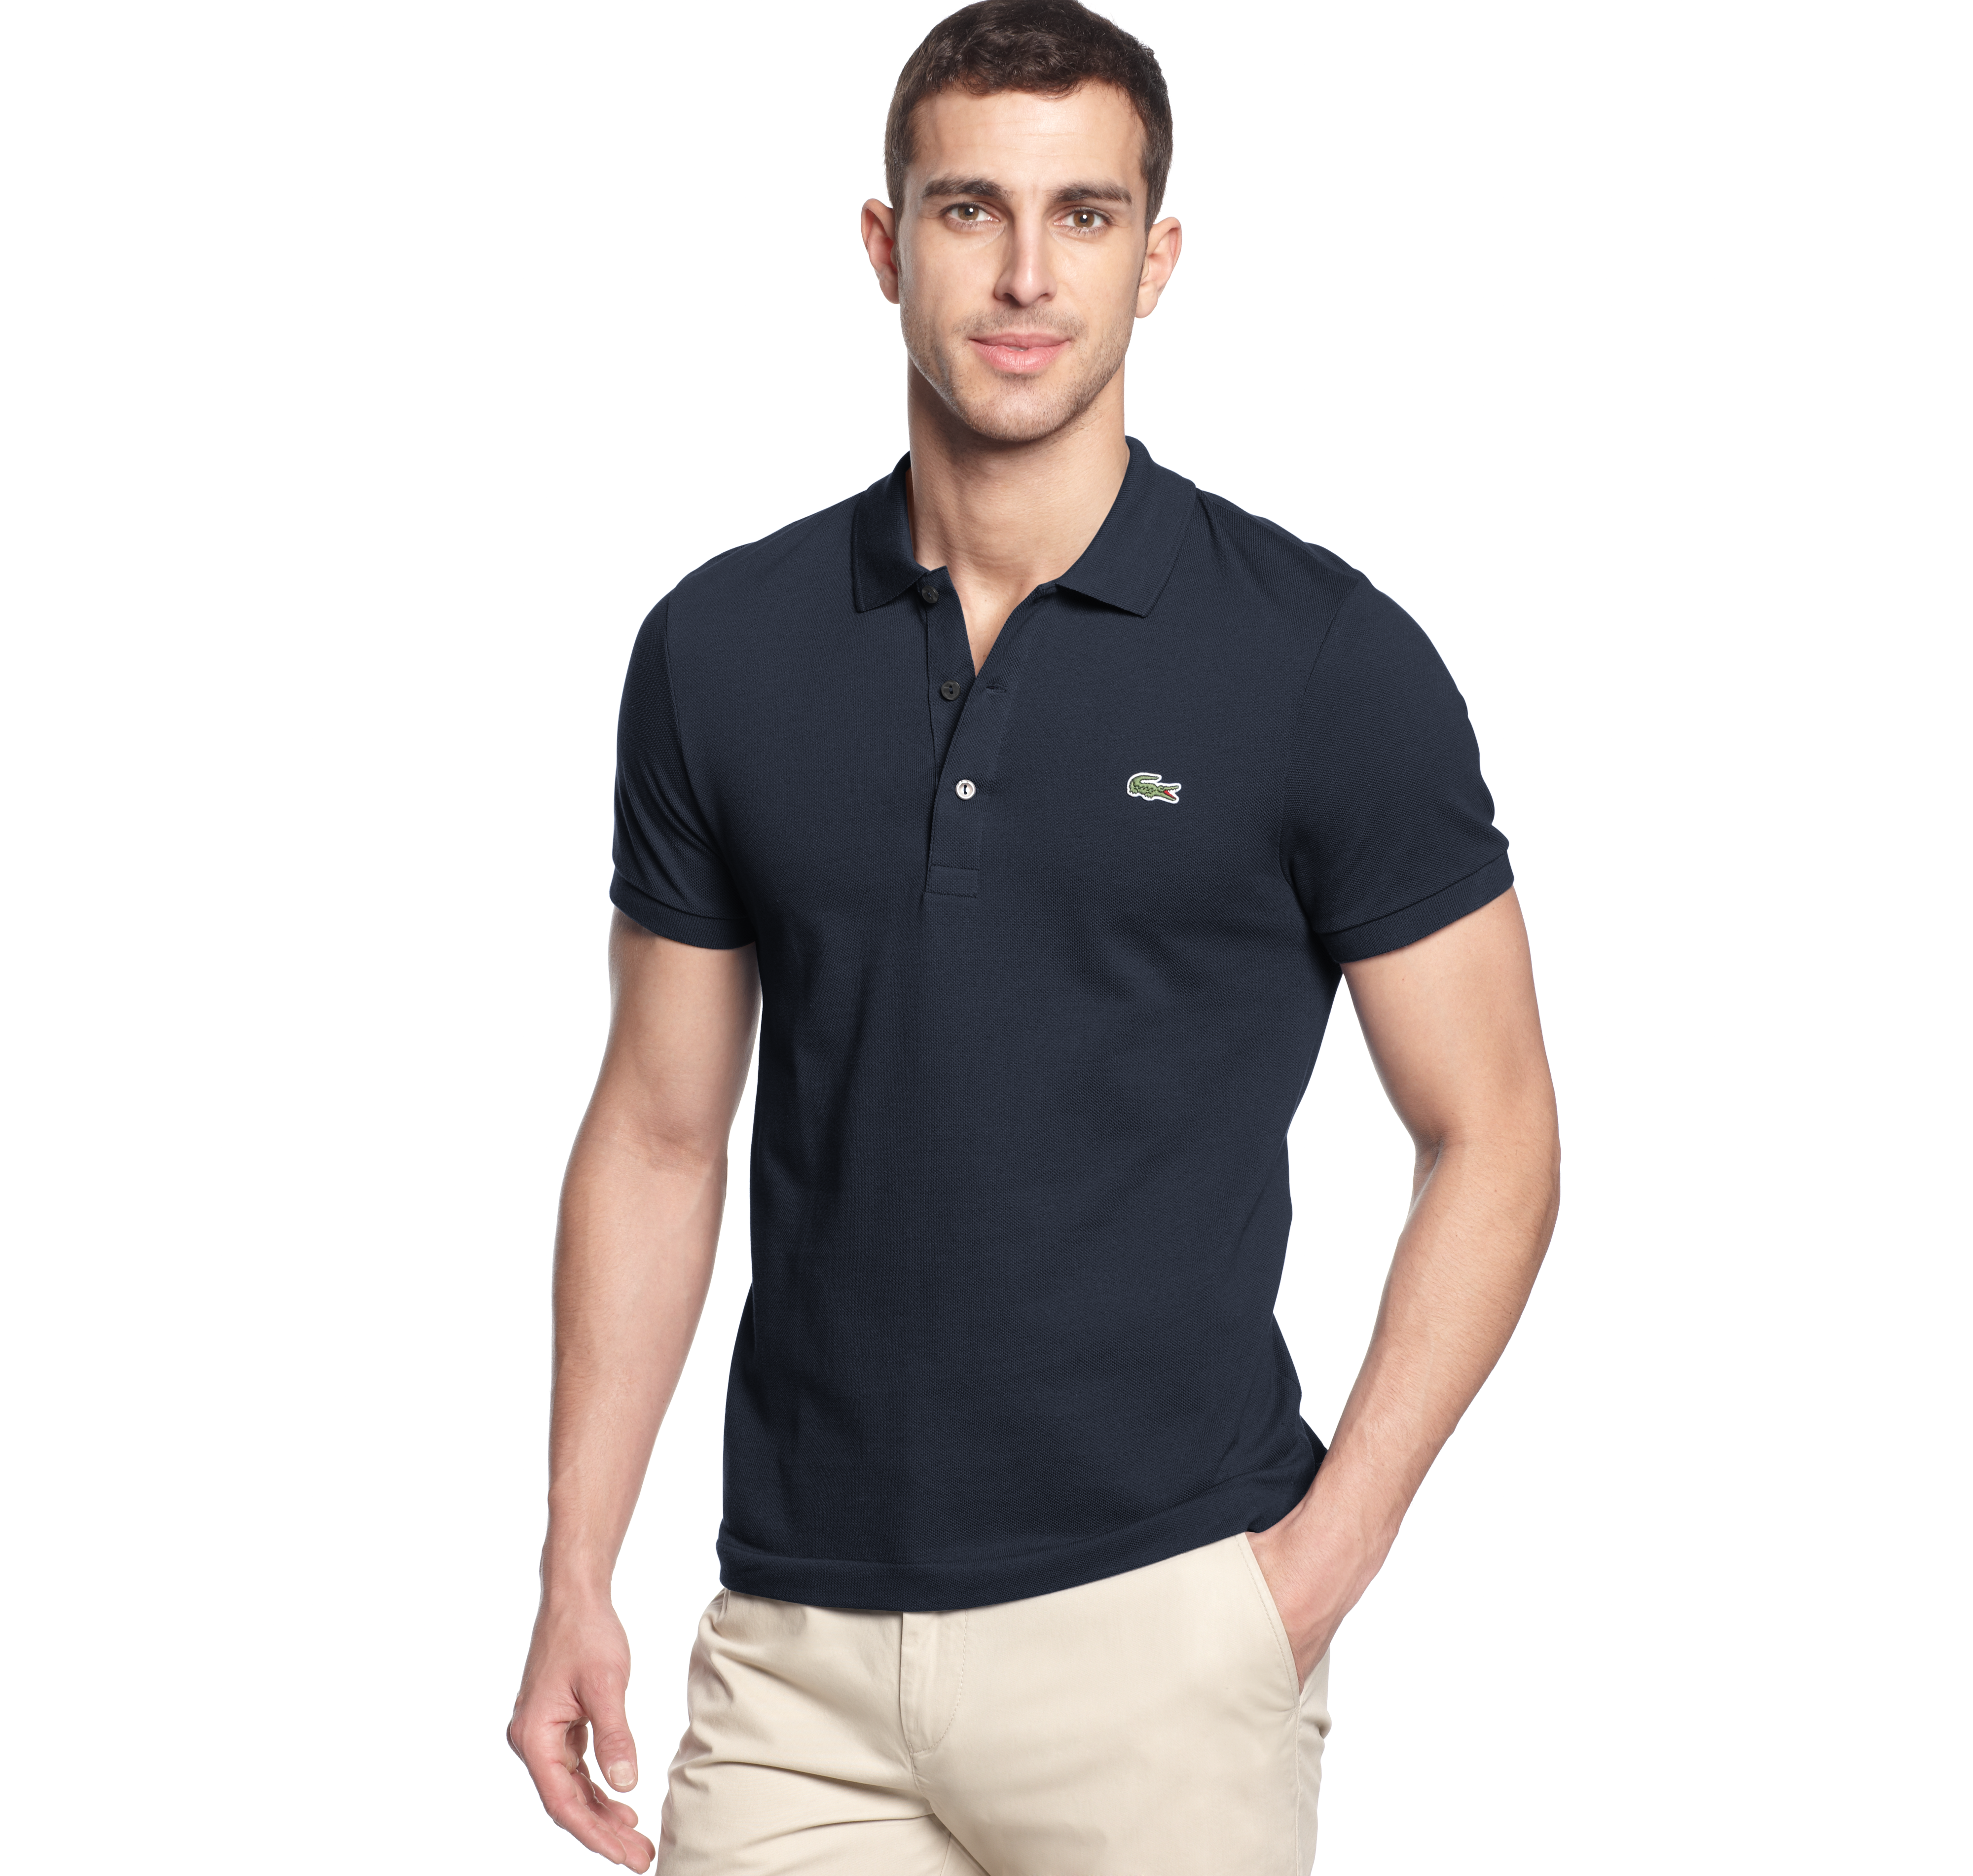 Lacoste Shirt bc9c77a9f96